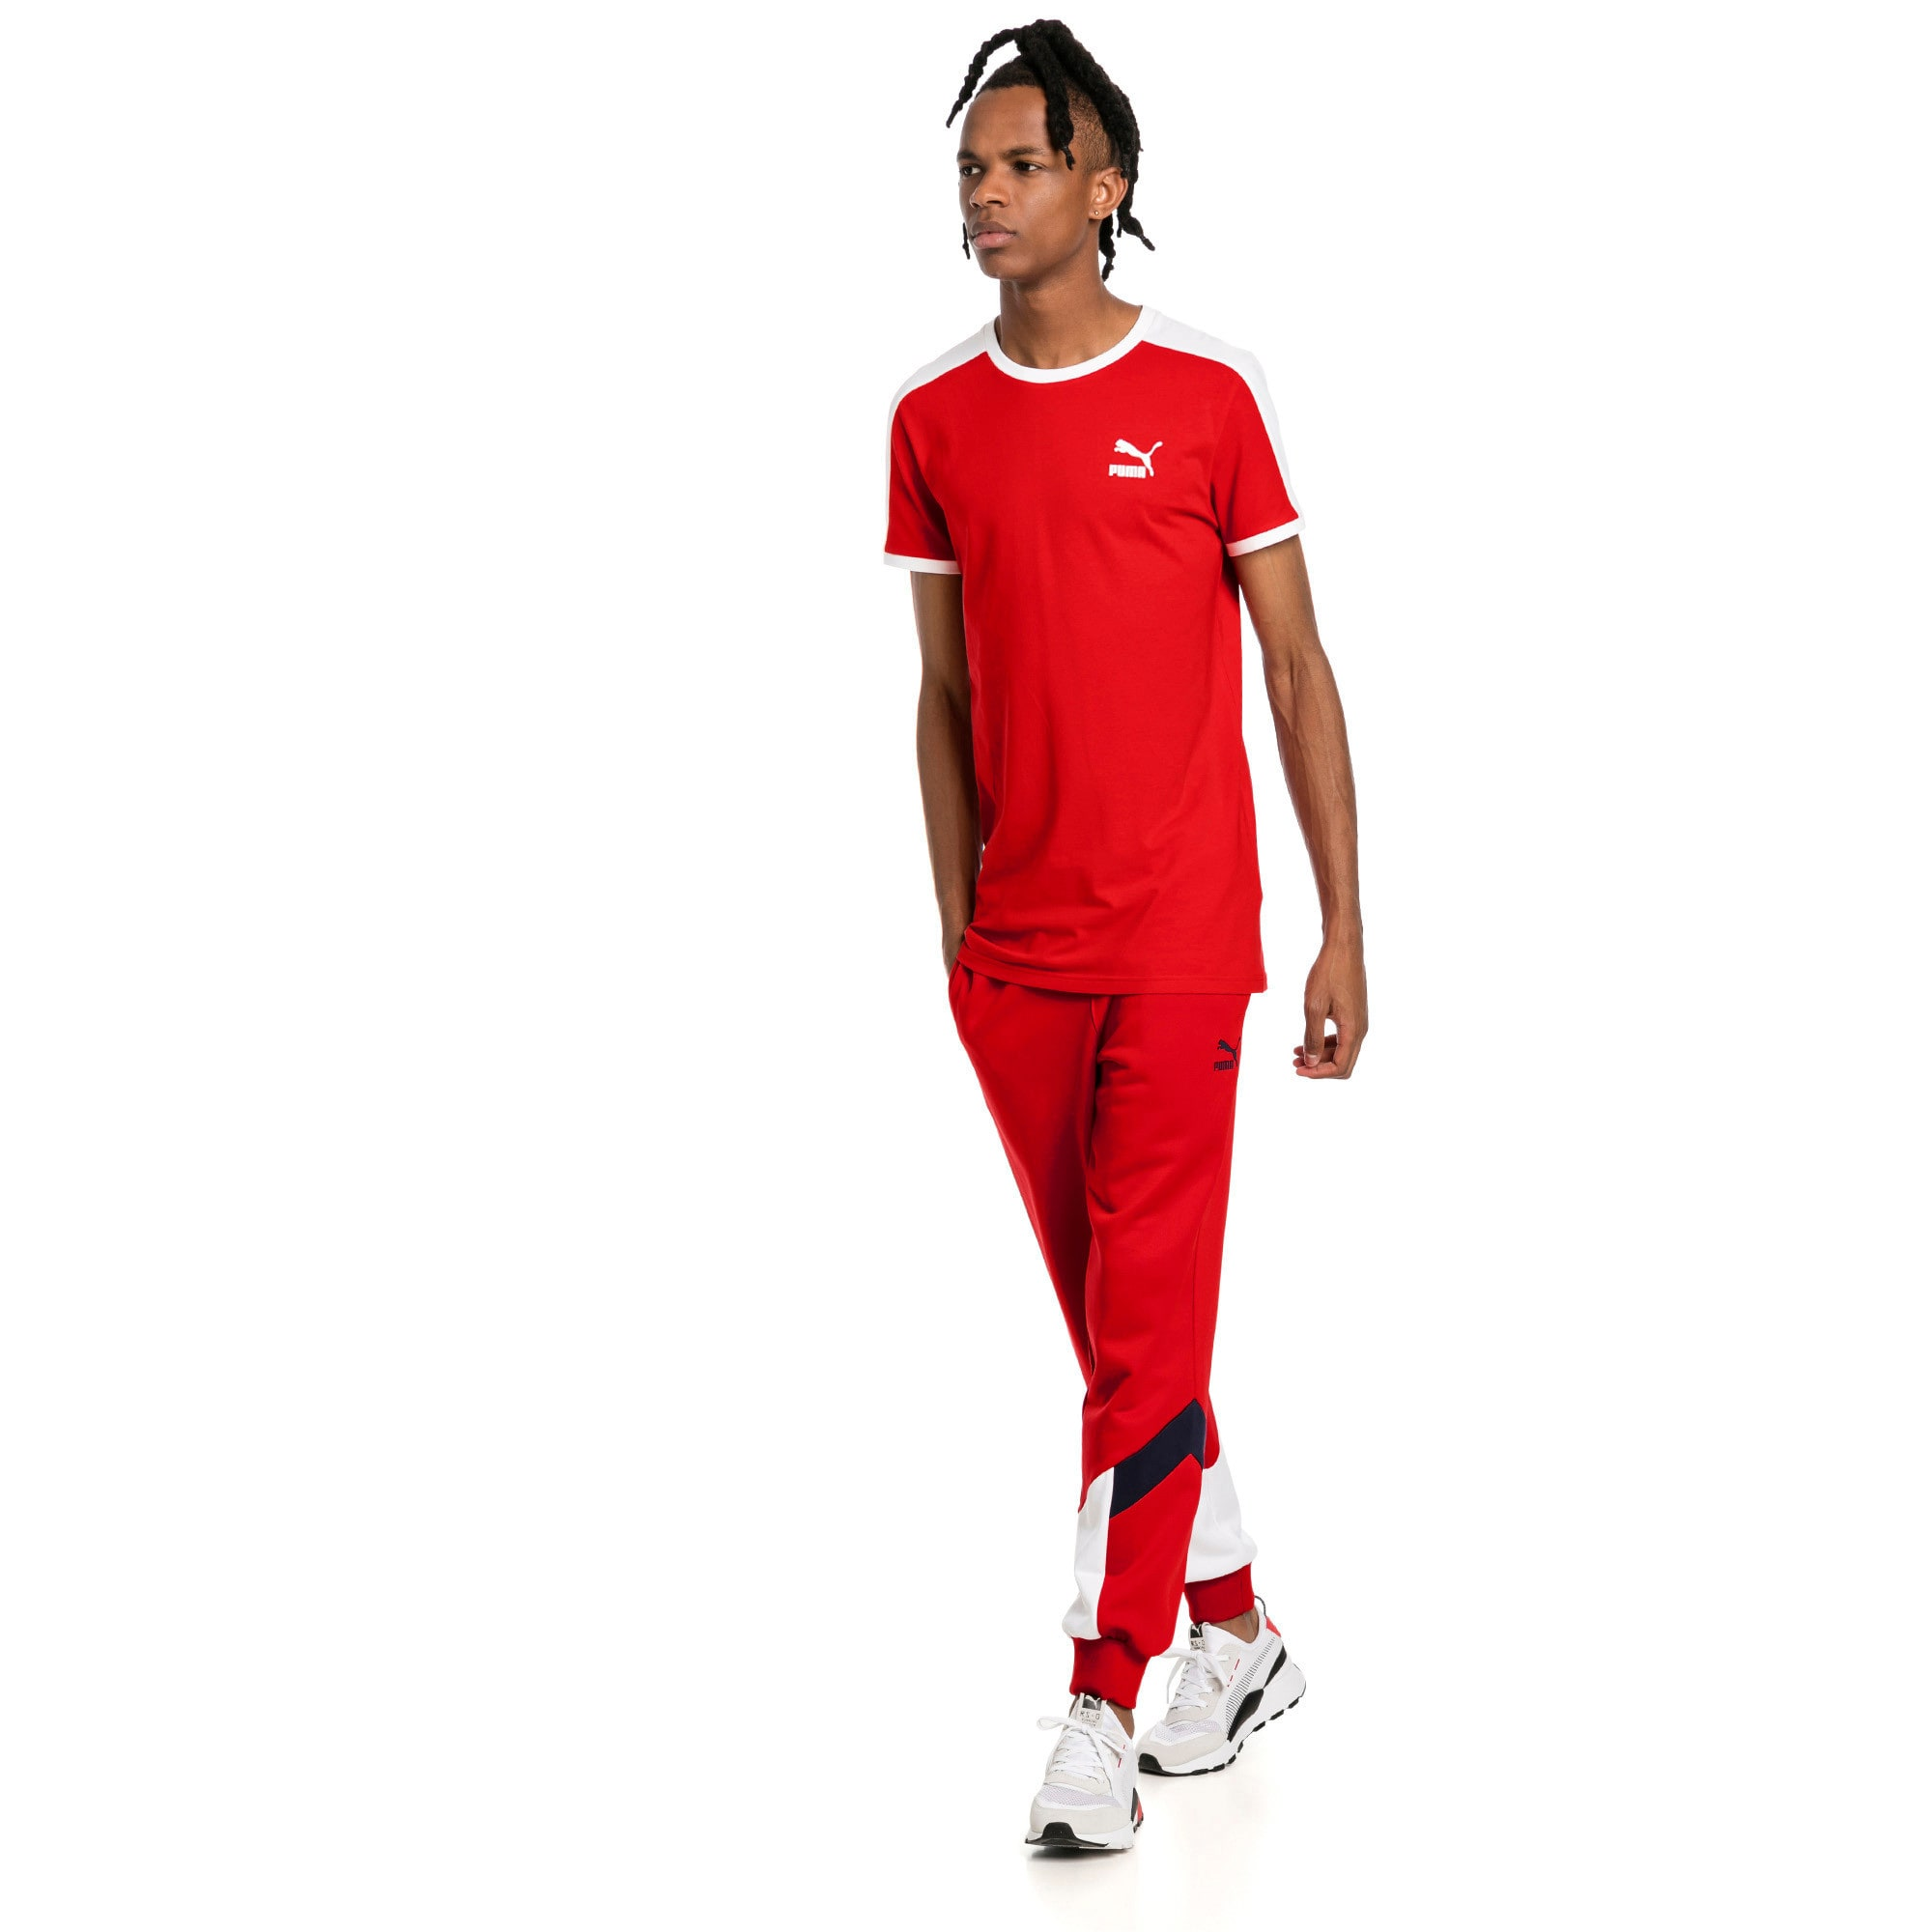 Thumbnail 2 of Iconic T7 Slim Men's Tee, High Risk Red, medium-IND